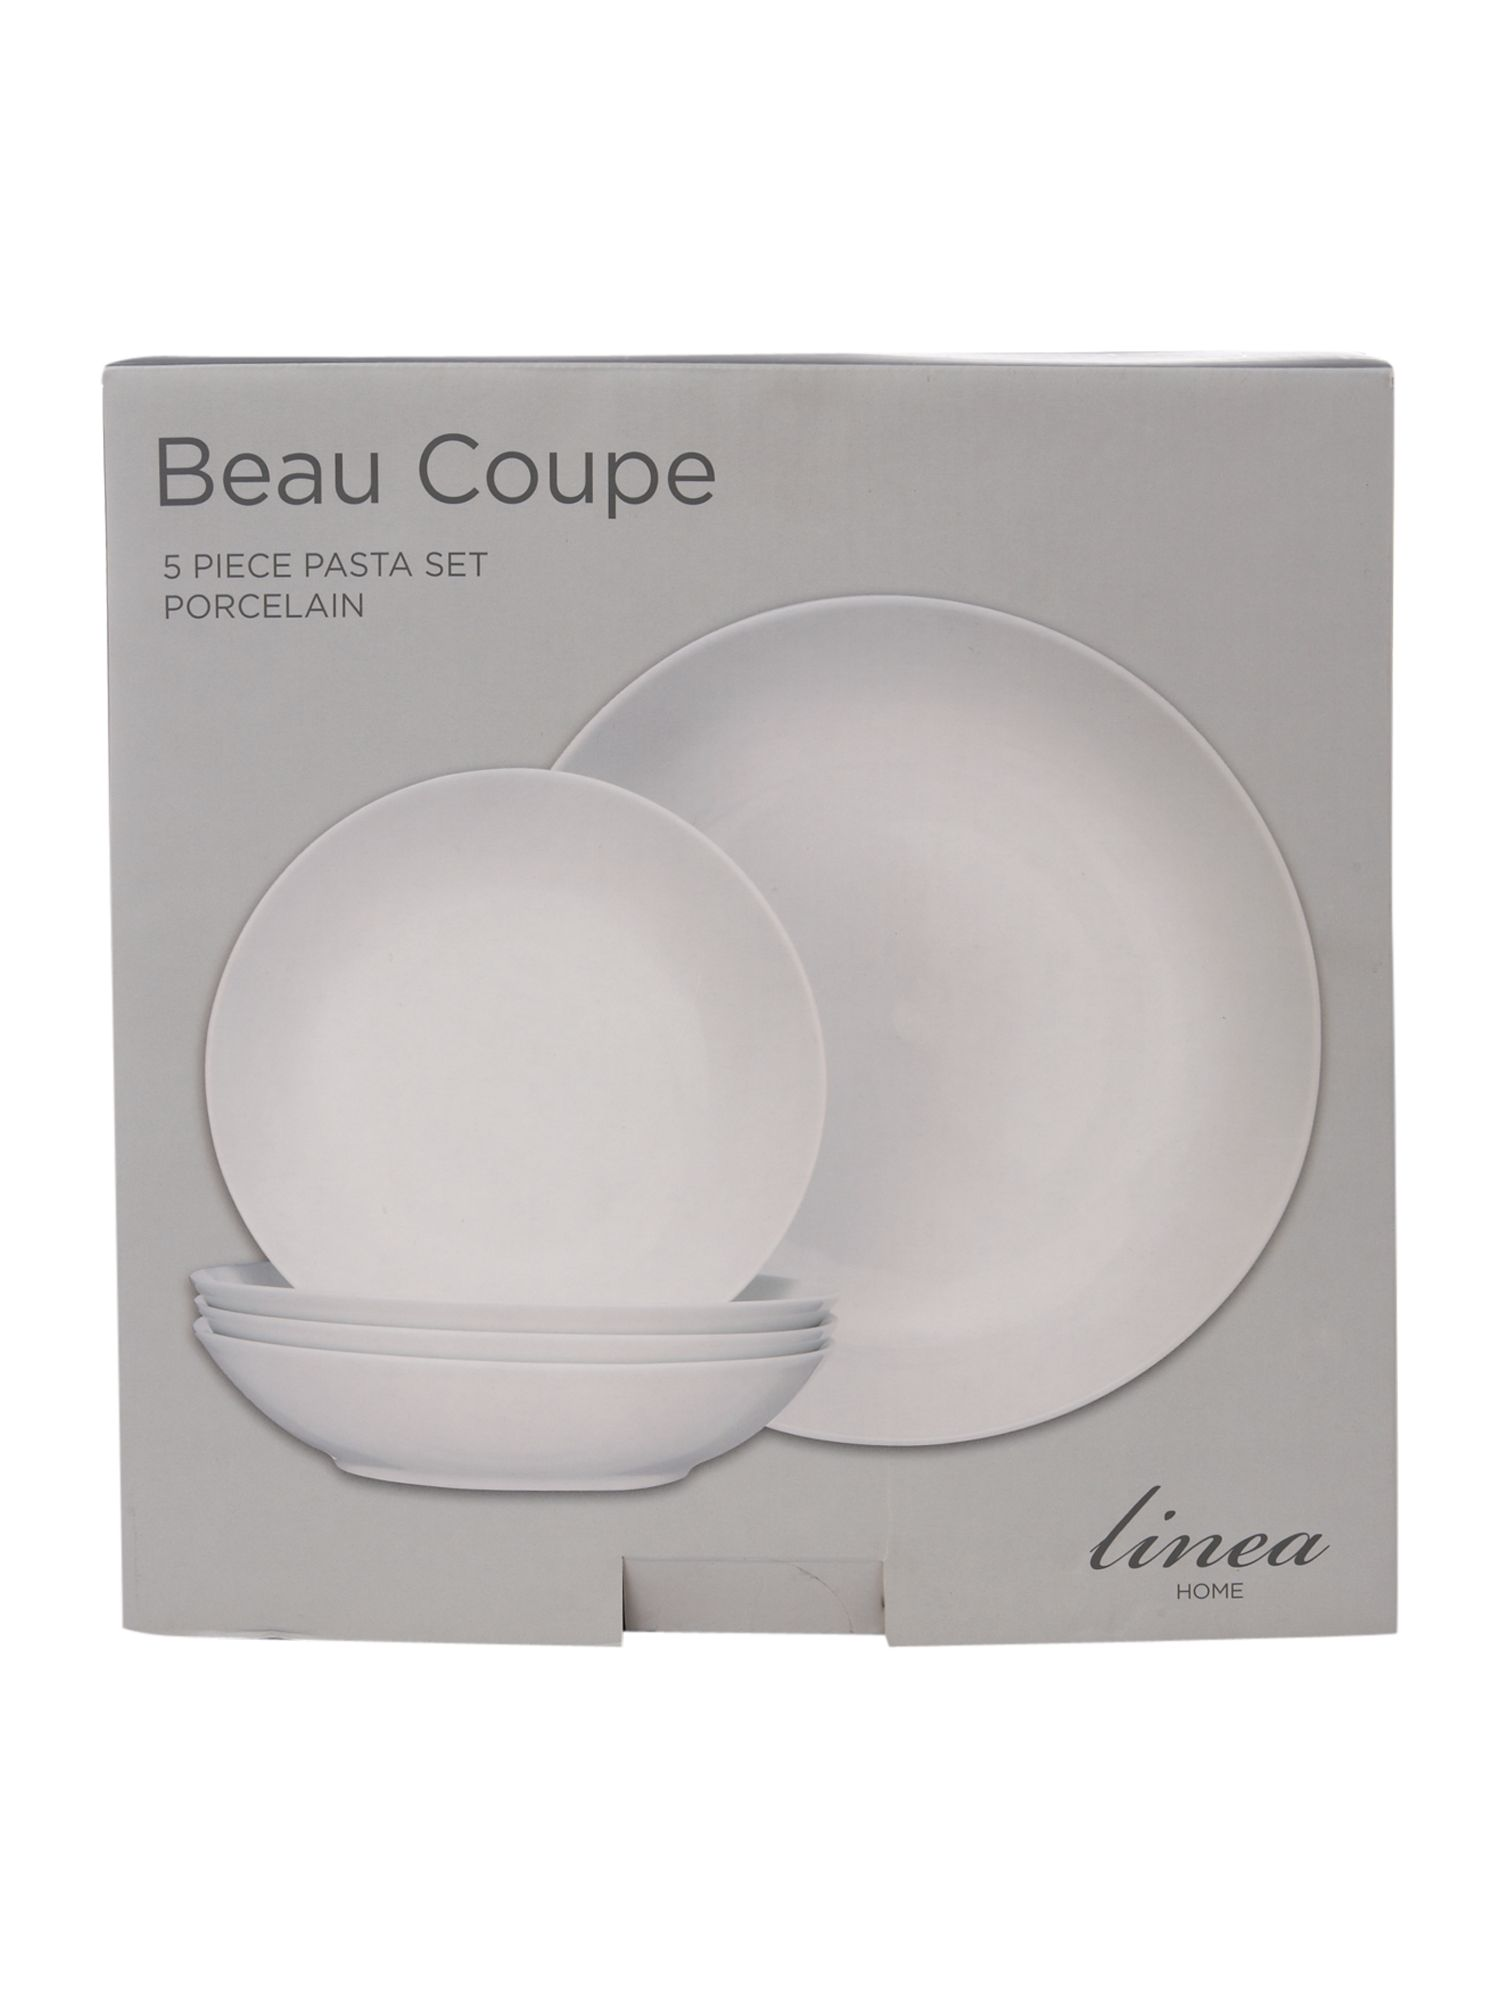 Beau coupe 5 piece pasta set